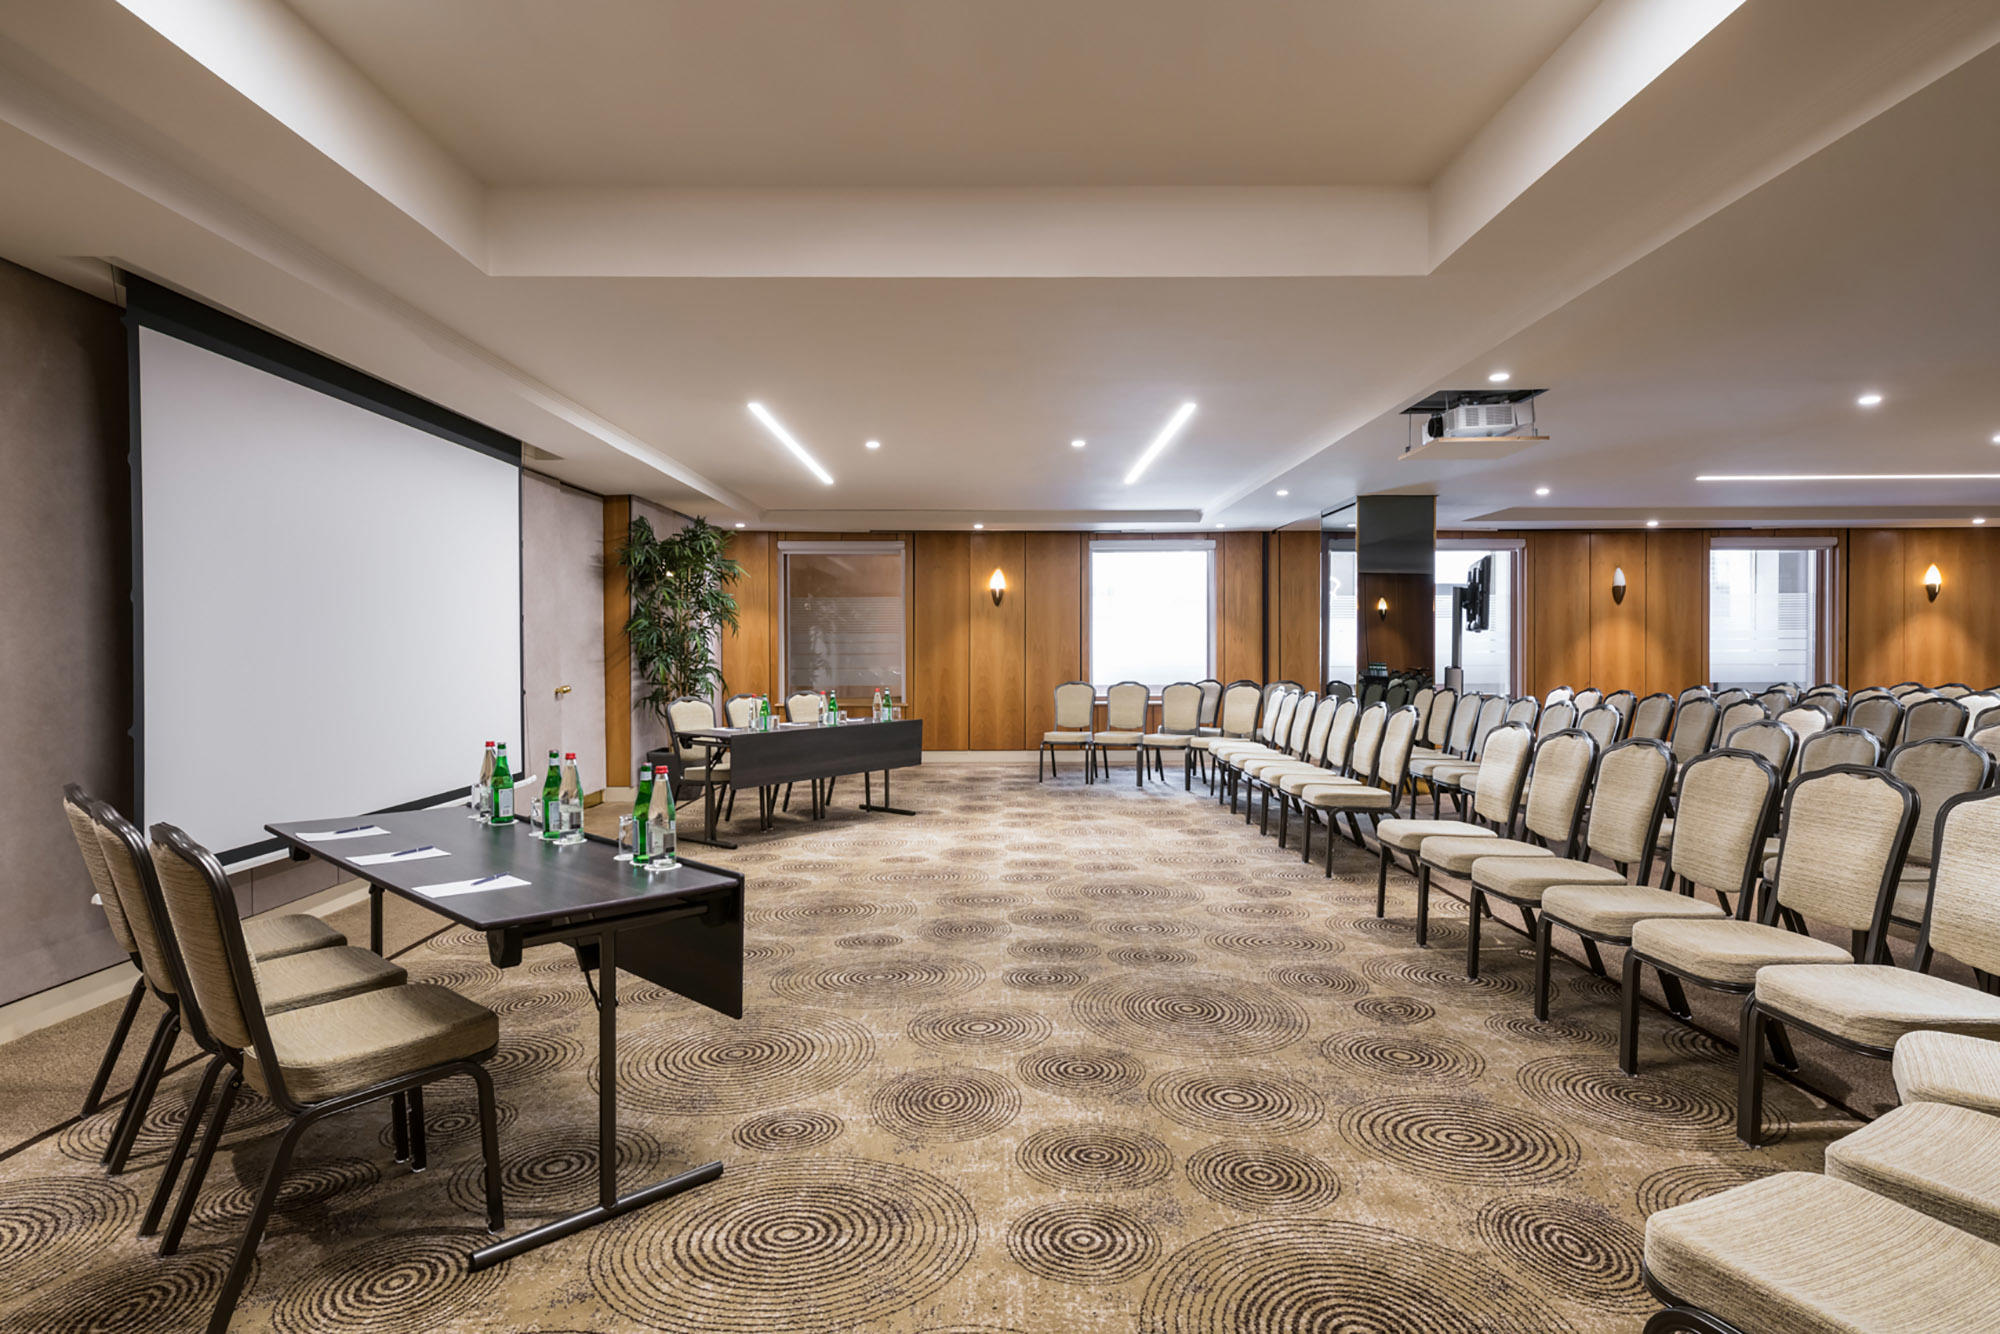 Meeting Room Theatre with Natural Light